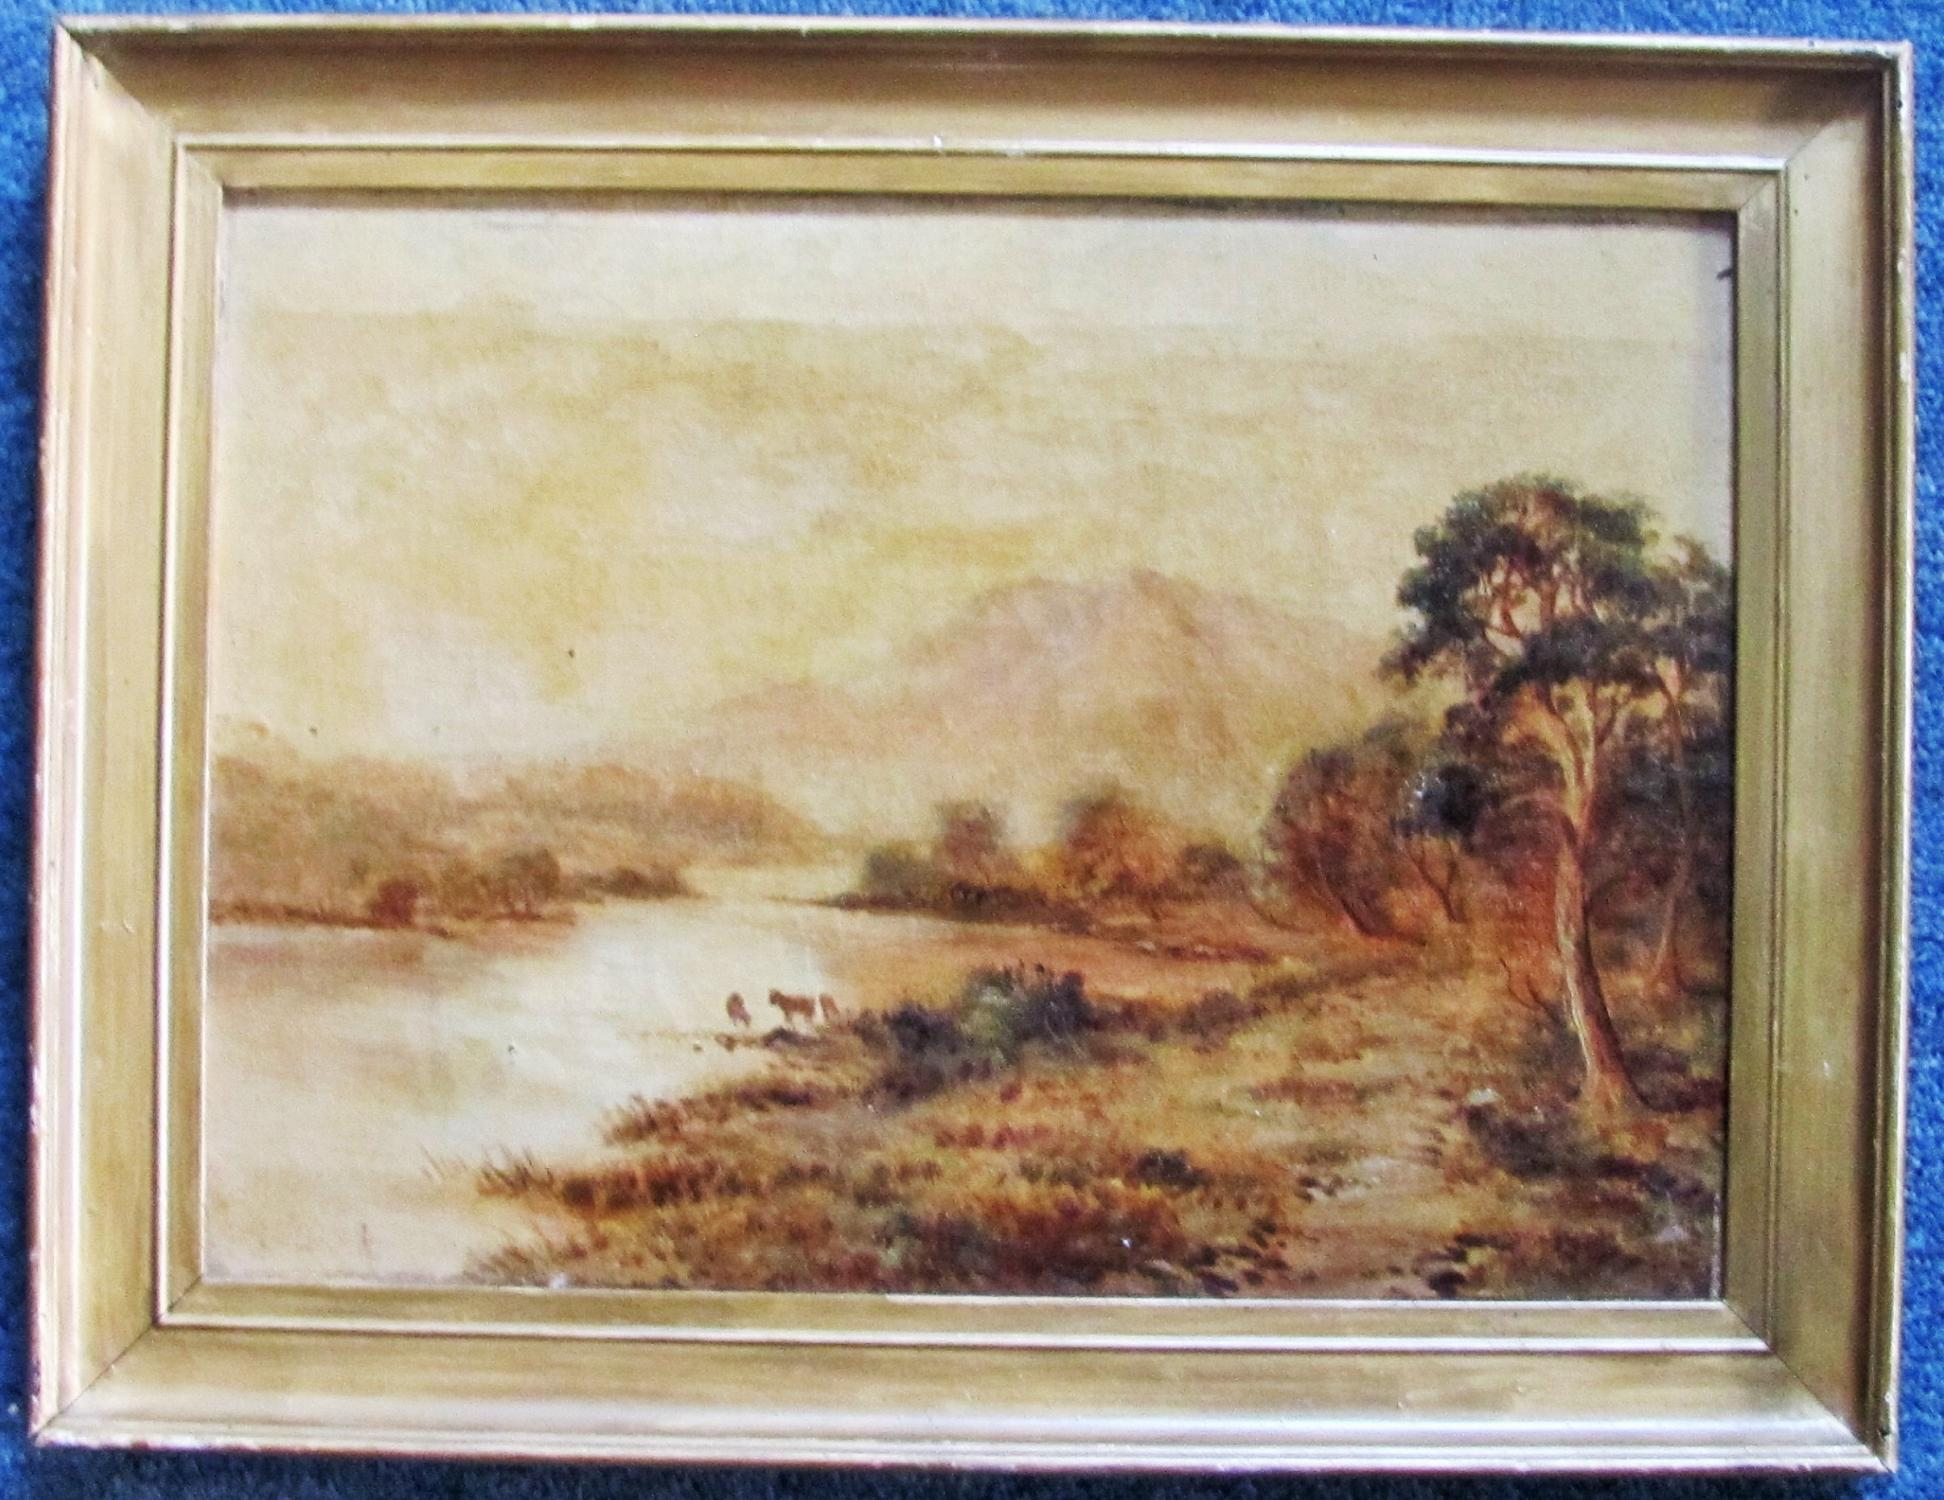 ON_THE_CONWAY_RIVER_II_WHALES_SIDNEY_YATES_JOHNSON_Very_Good